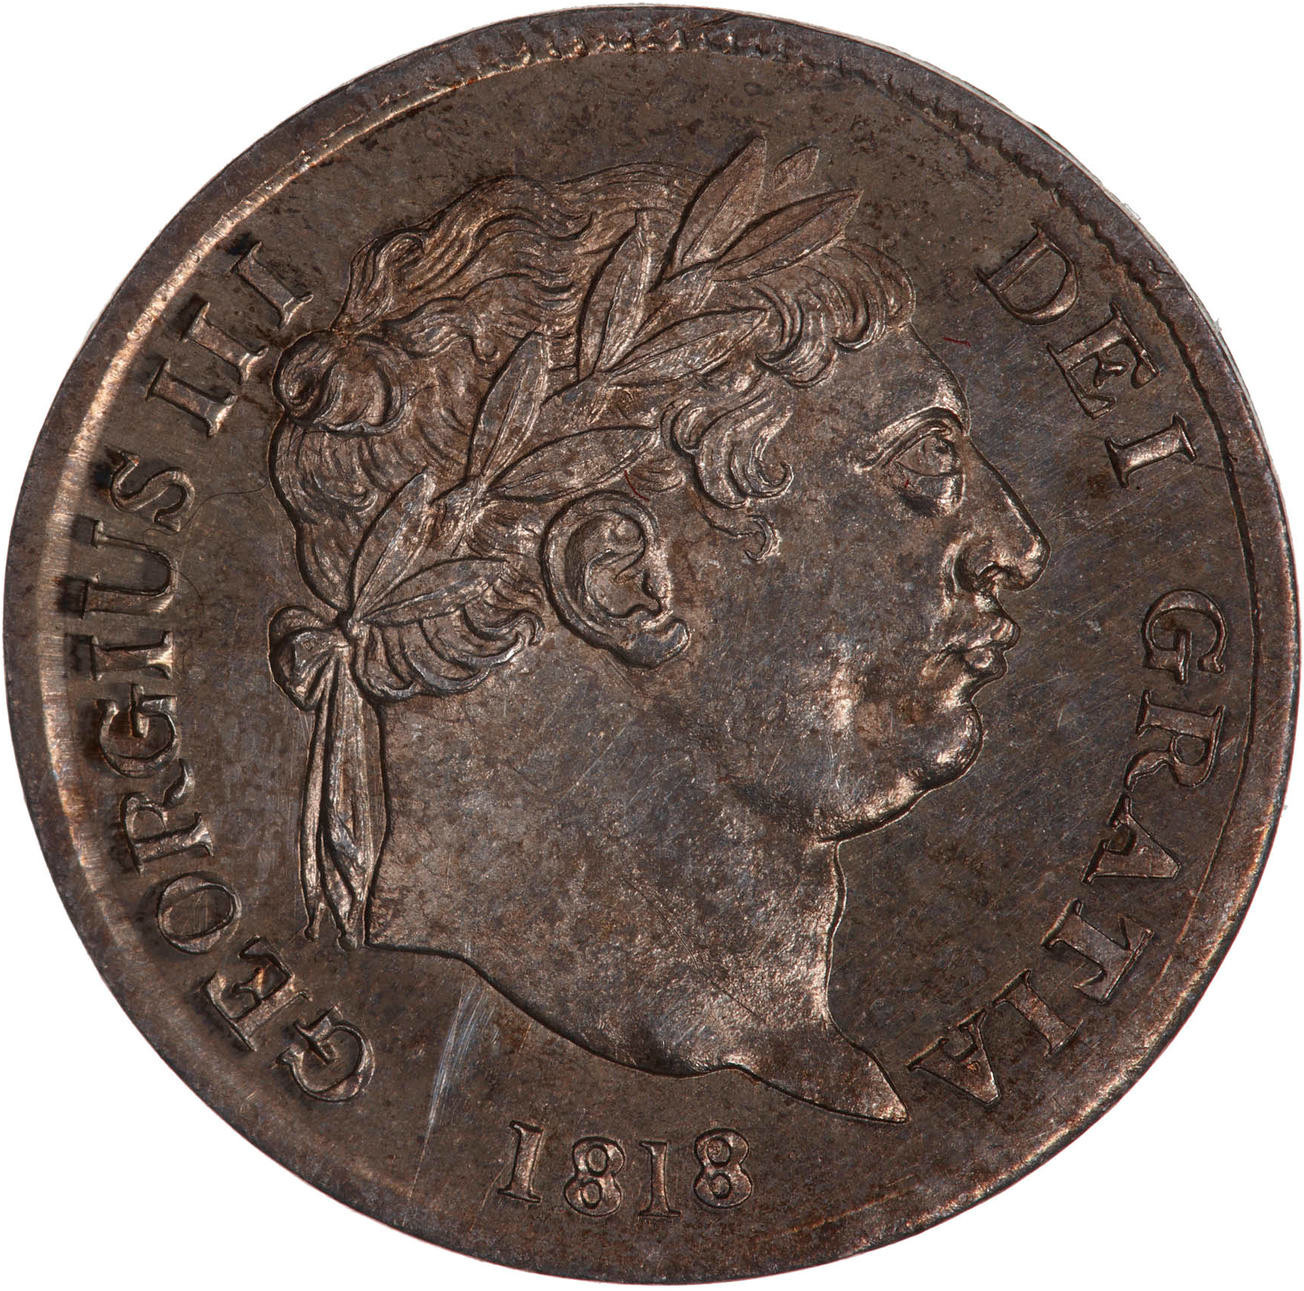 Fourpence 1818 (Maundy): Photo Coin - Groat, George III, Great Britain, 1818